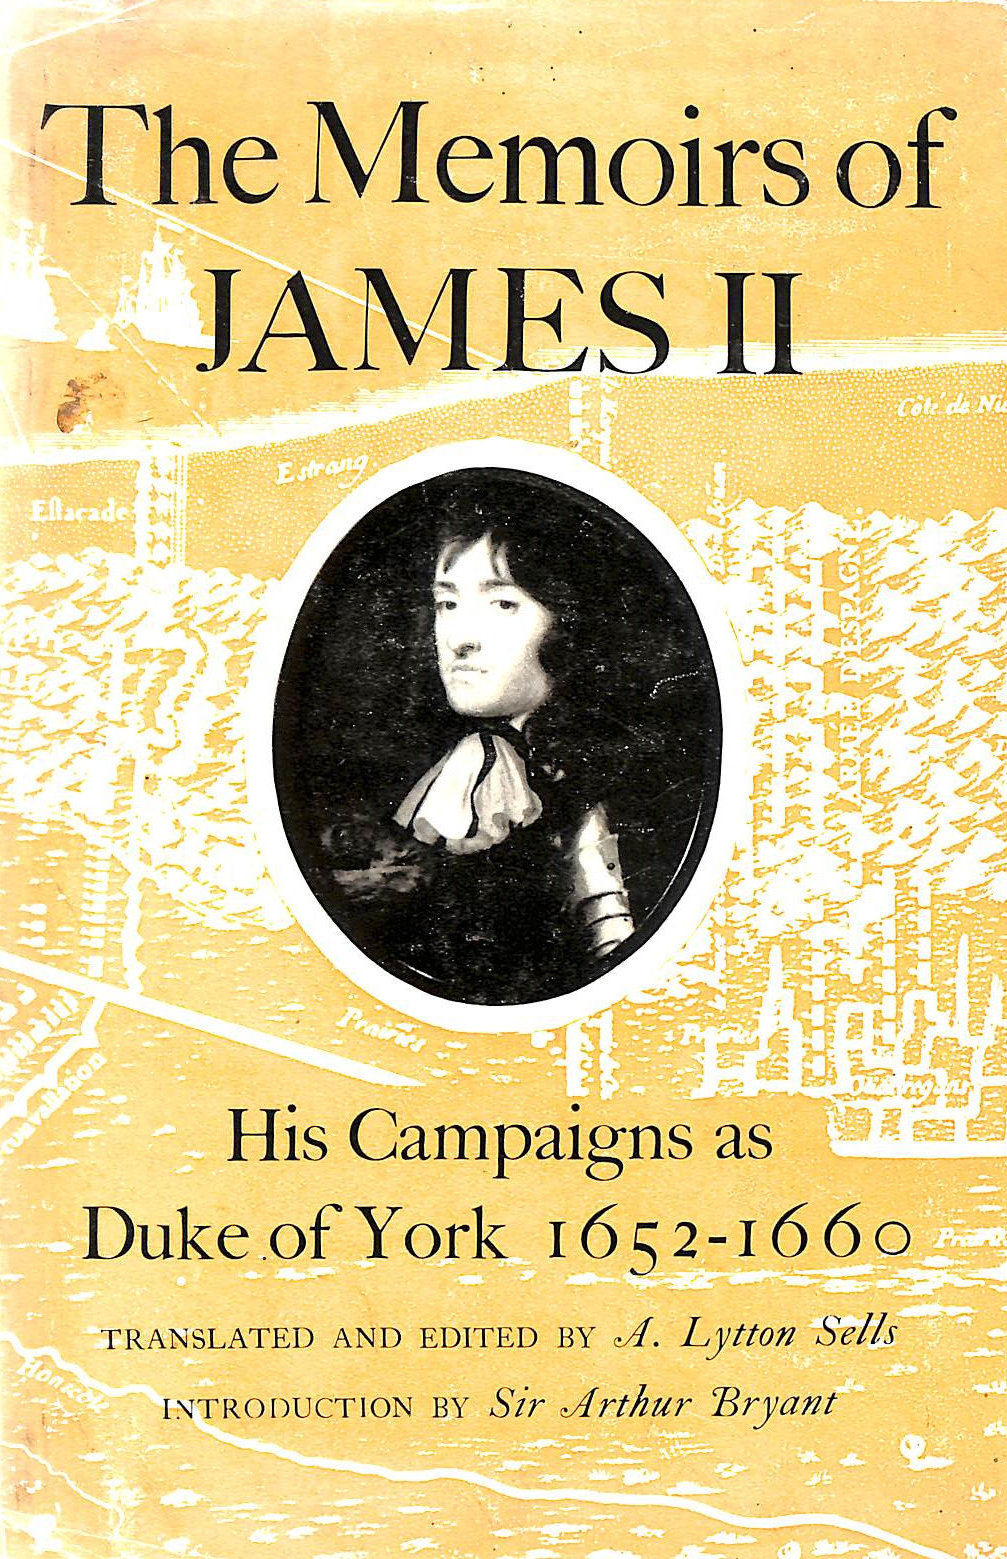 Image for The Memoirs of James II: His campaigns as Duke of York, 1652-1660